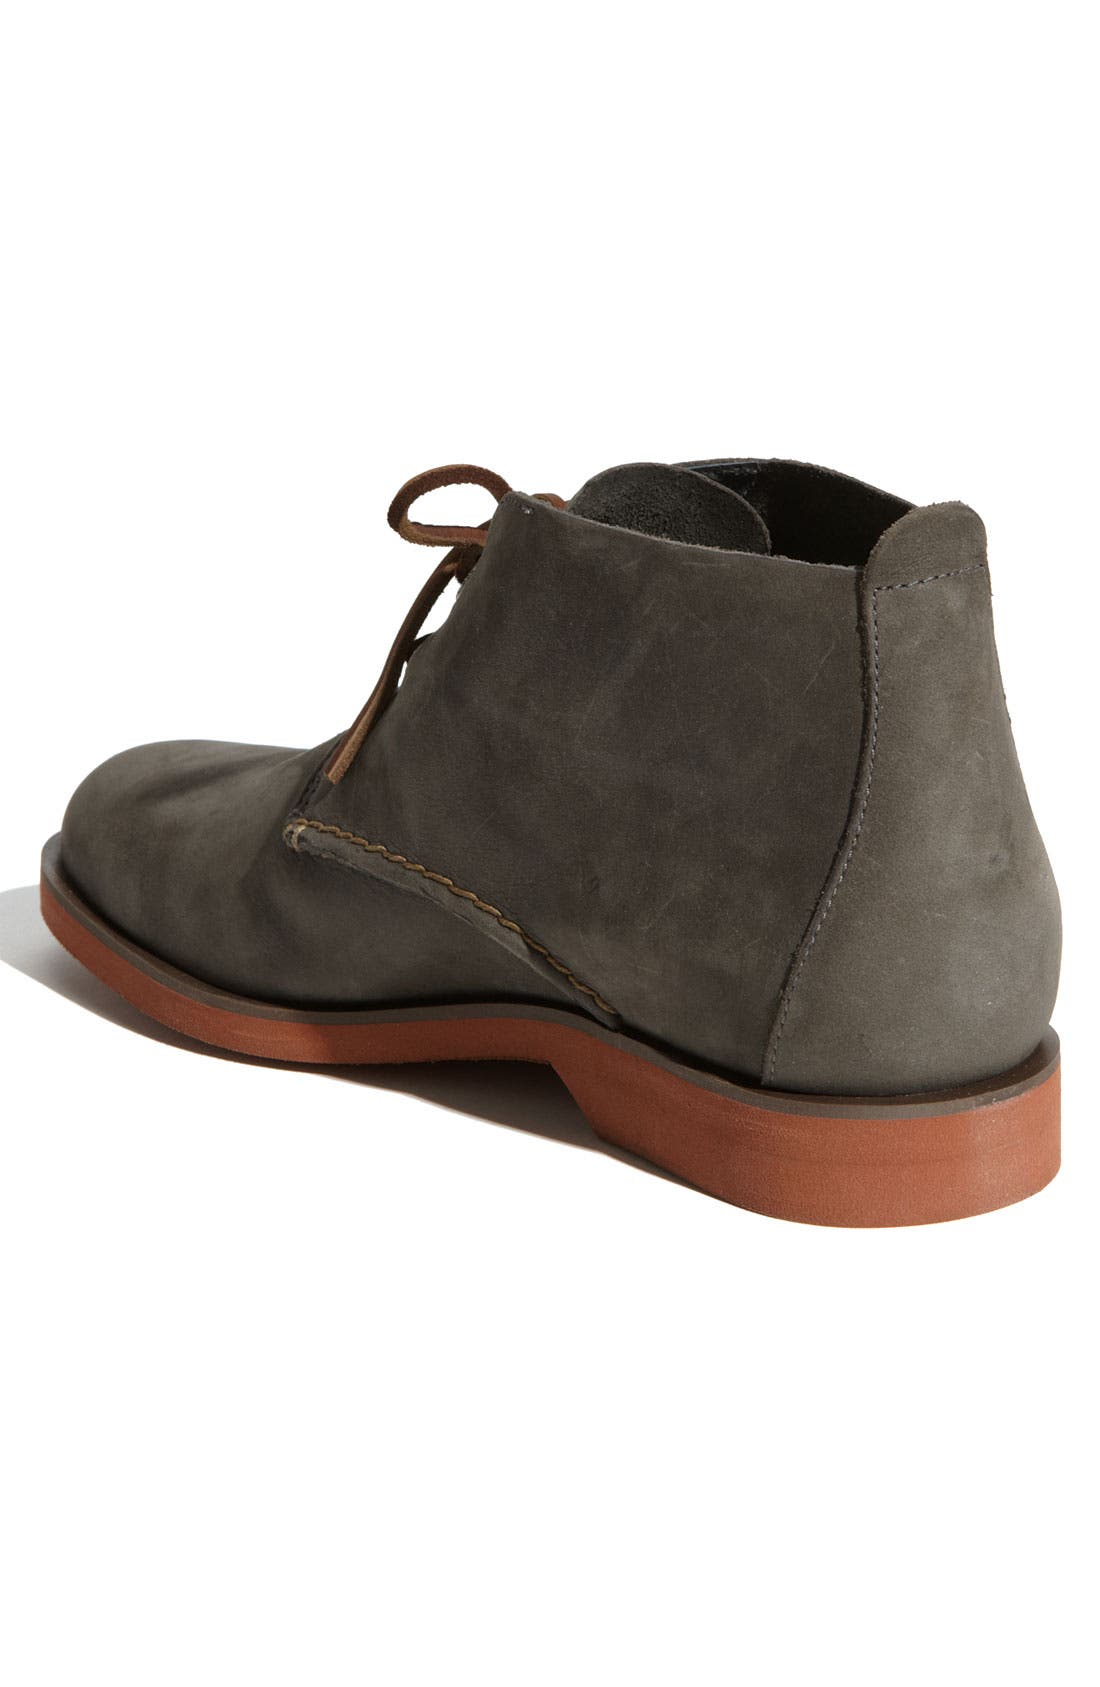 Top-Sider<sup>®</sup> 'Boat Ox' Chukka Boot,                             Alternate thumbnail 4, color,                             020